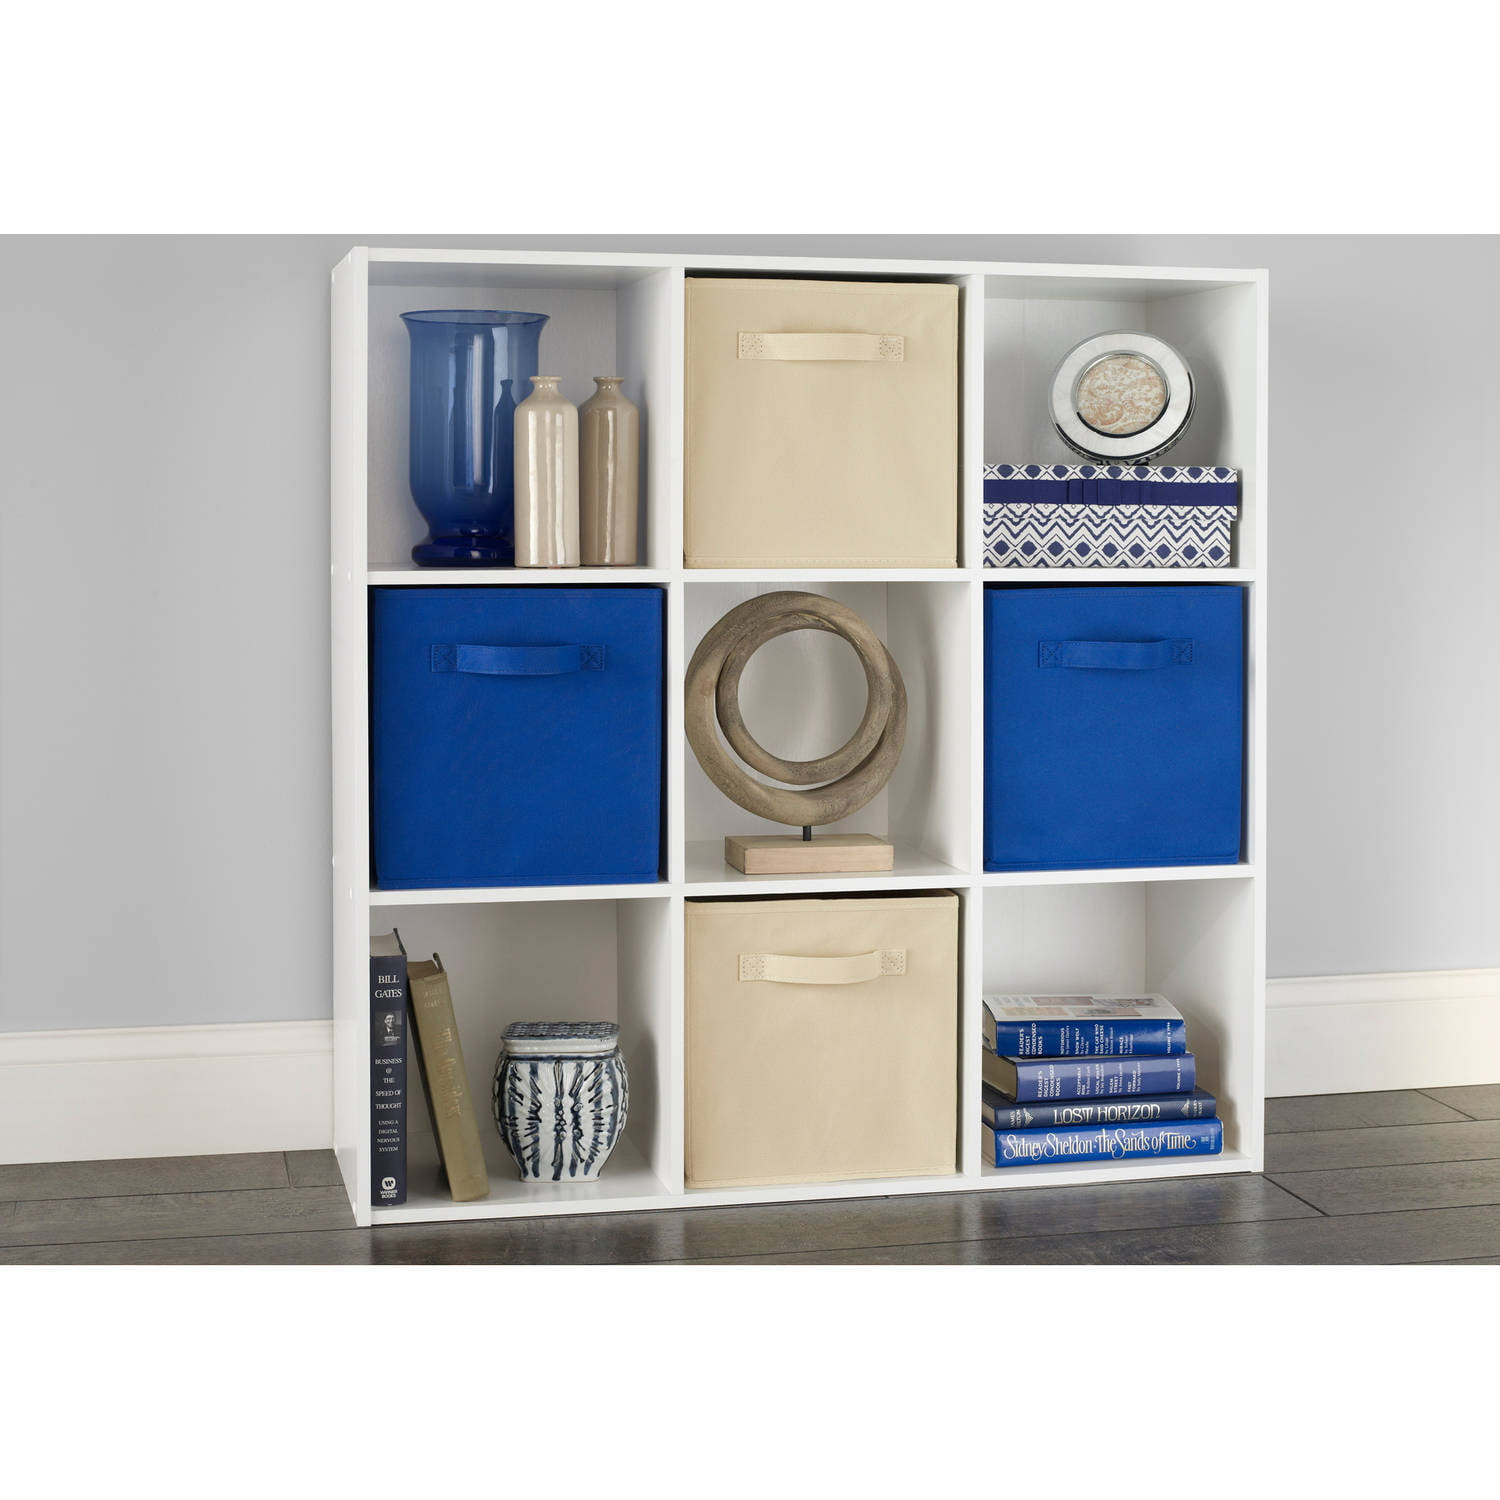 organizer shoe rack caddy c for cabinets maximum shelving shelf and cubes revolving tub target closet racks tubs ikea storage space boot